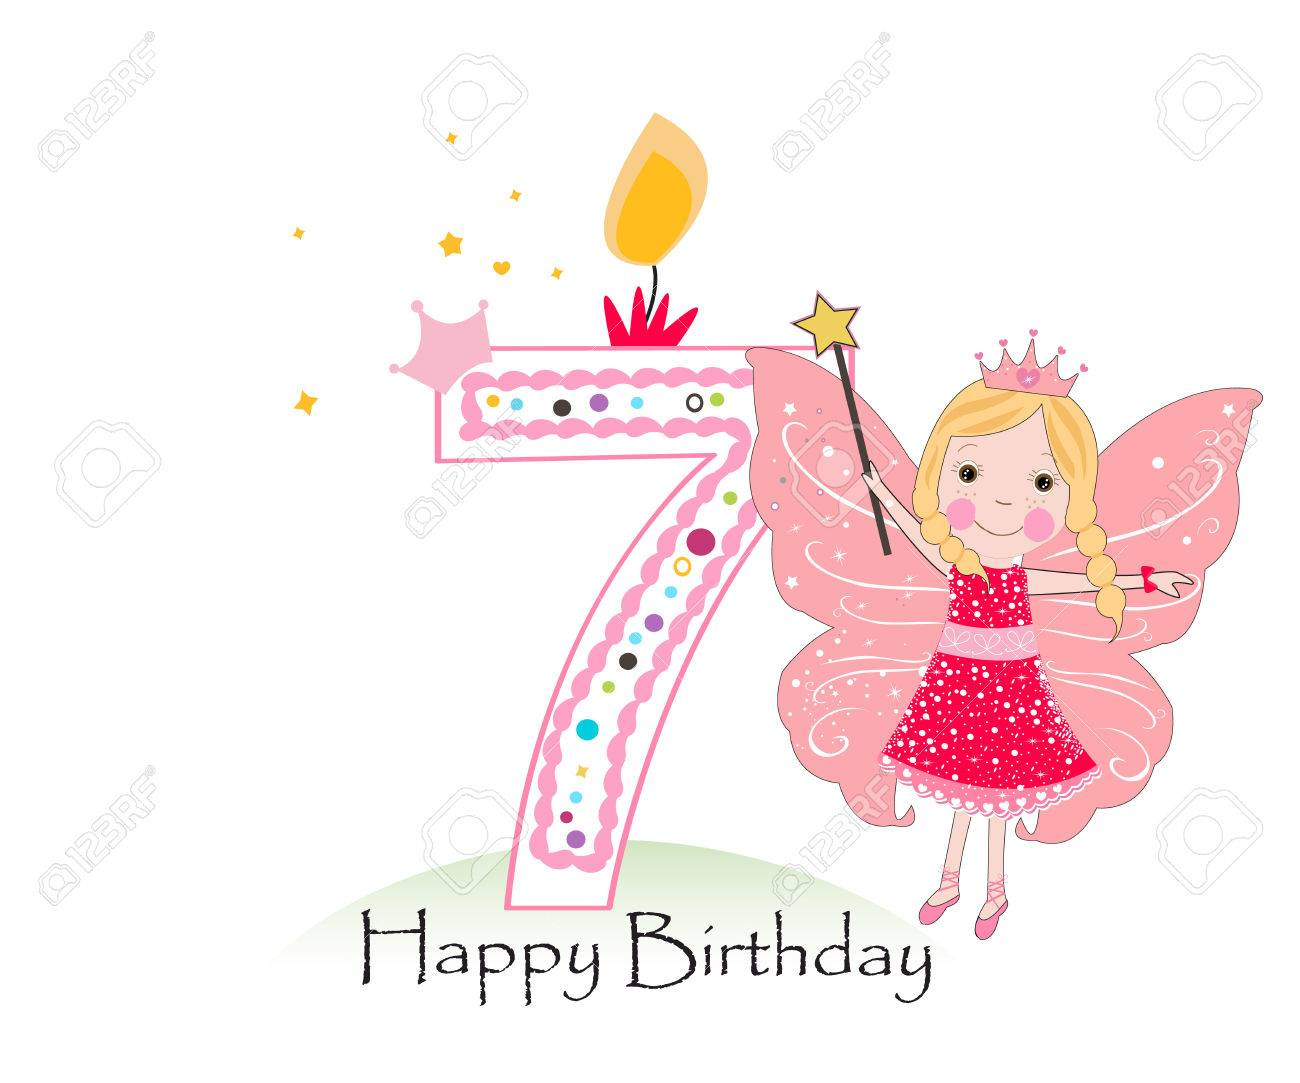 Happy Seventh Birthday Candle Baby Girl Greeting Card With Fairy Tale Vector Background Stock